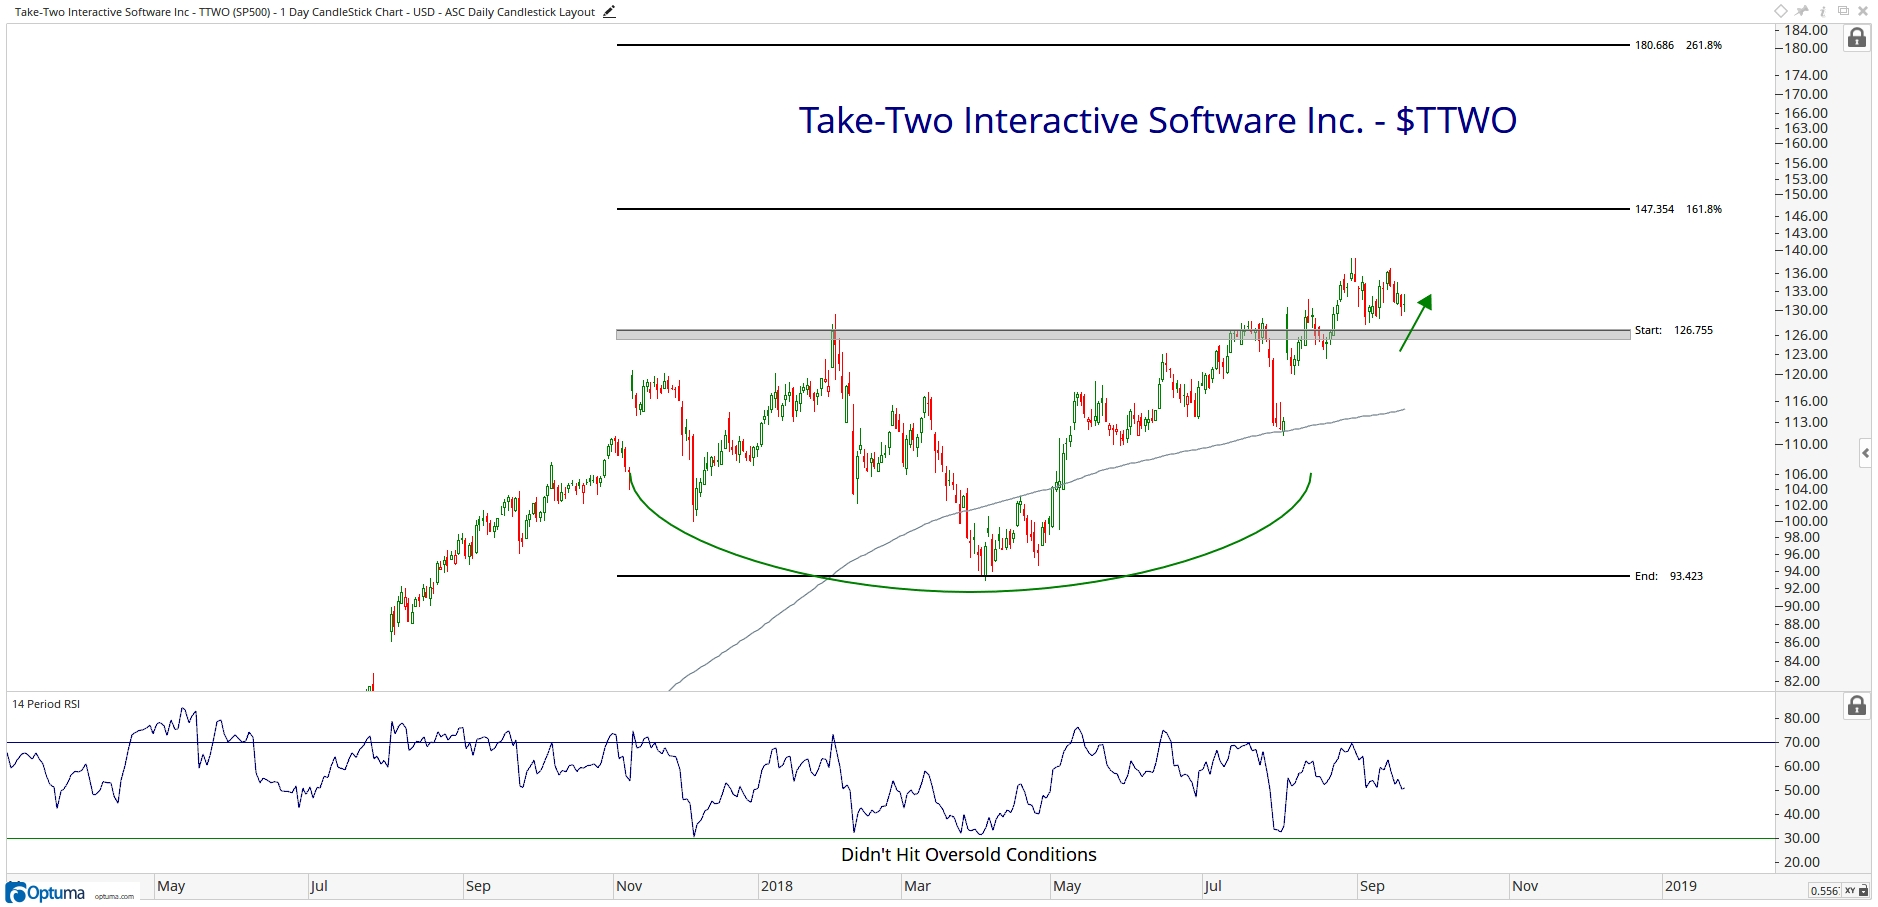 Communications Services Sector Changes - All Star Charts -